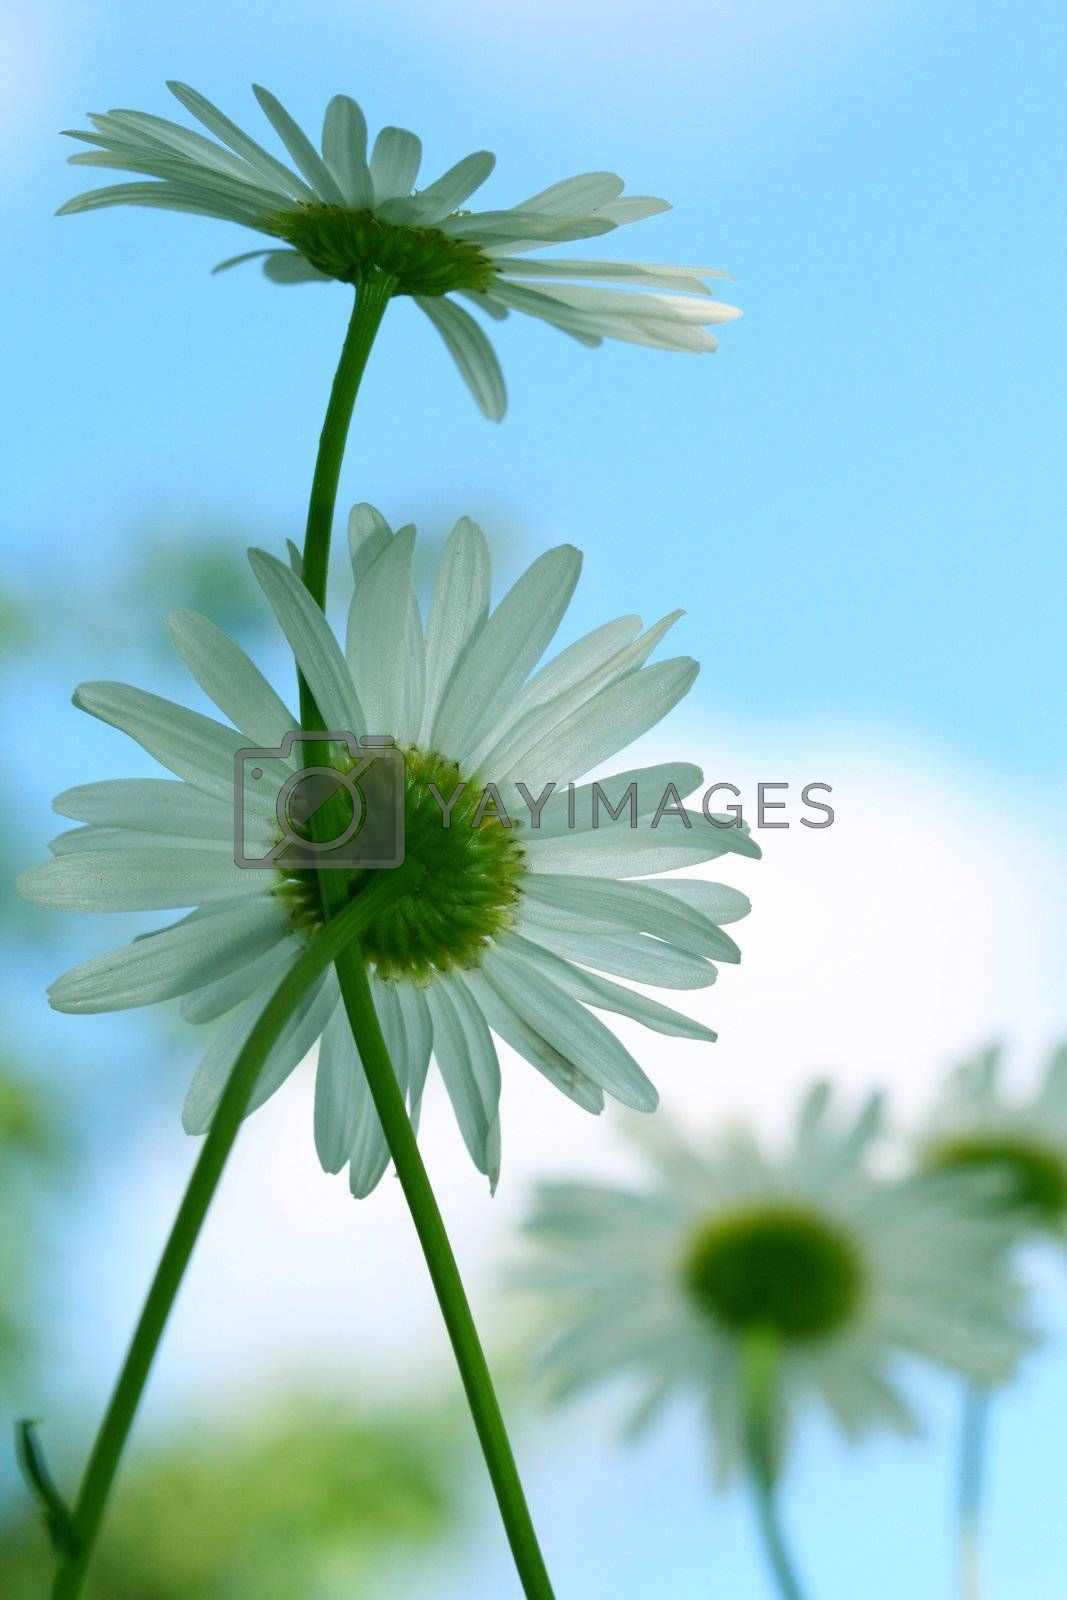 camomile daisy flowers in the sky